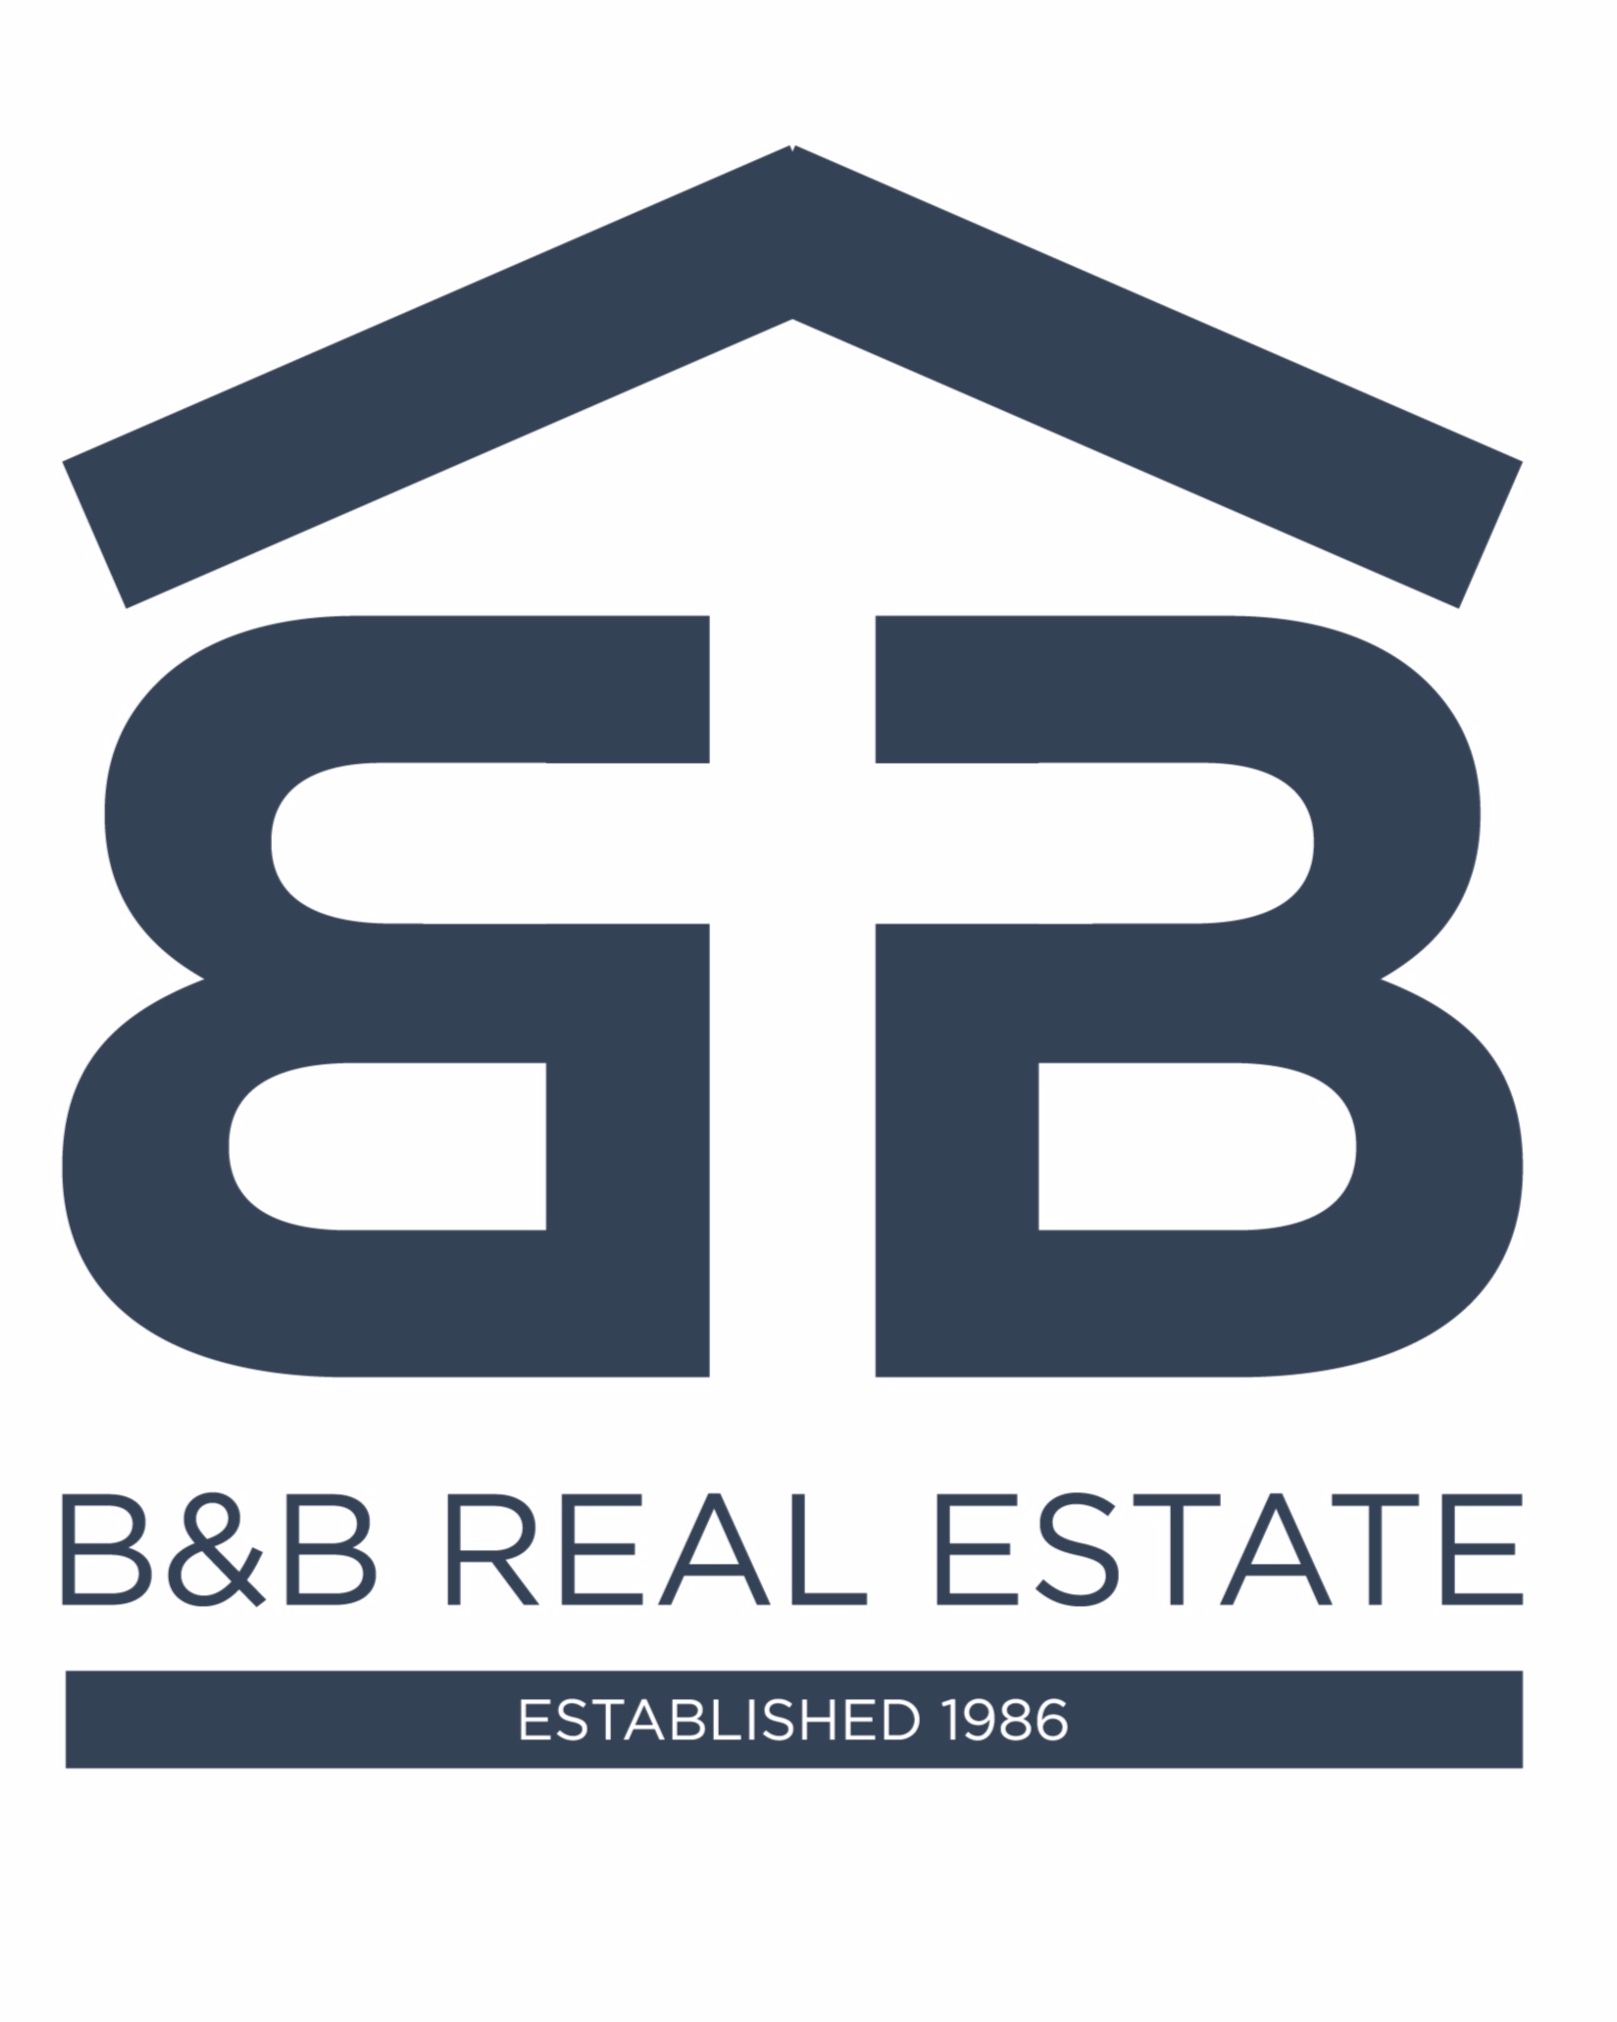 B&B Real Estate_FINAL LOGO.png